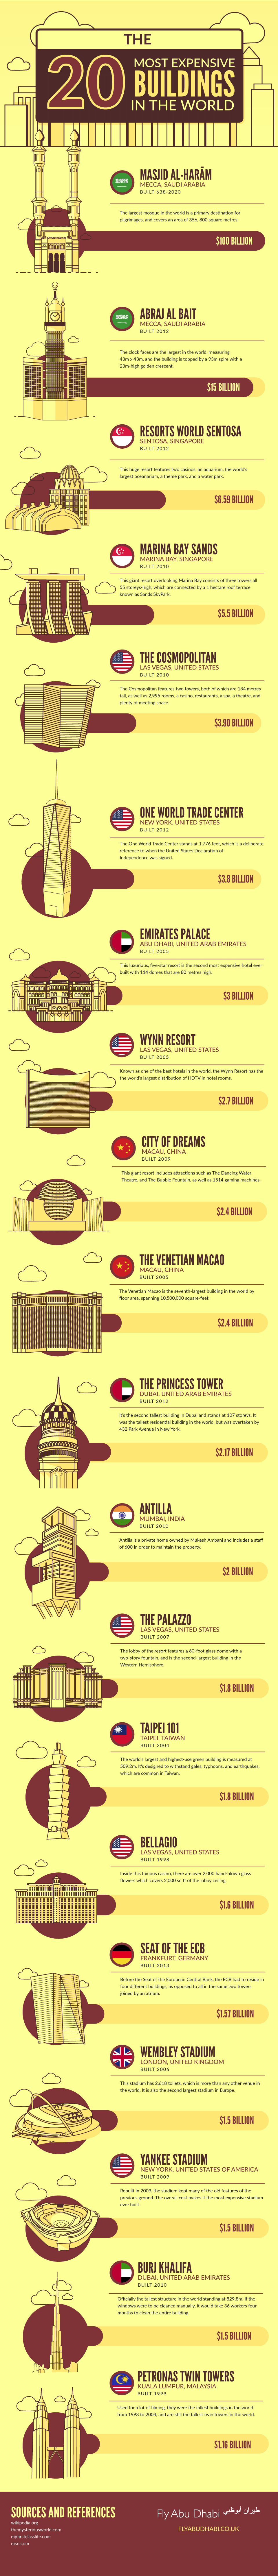 most-expensive-buildings